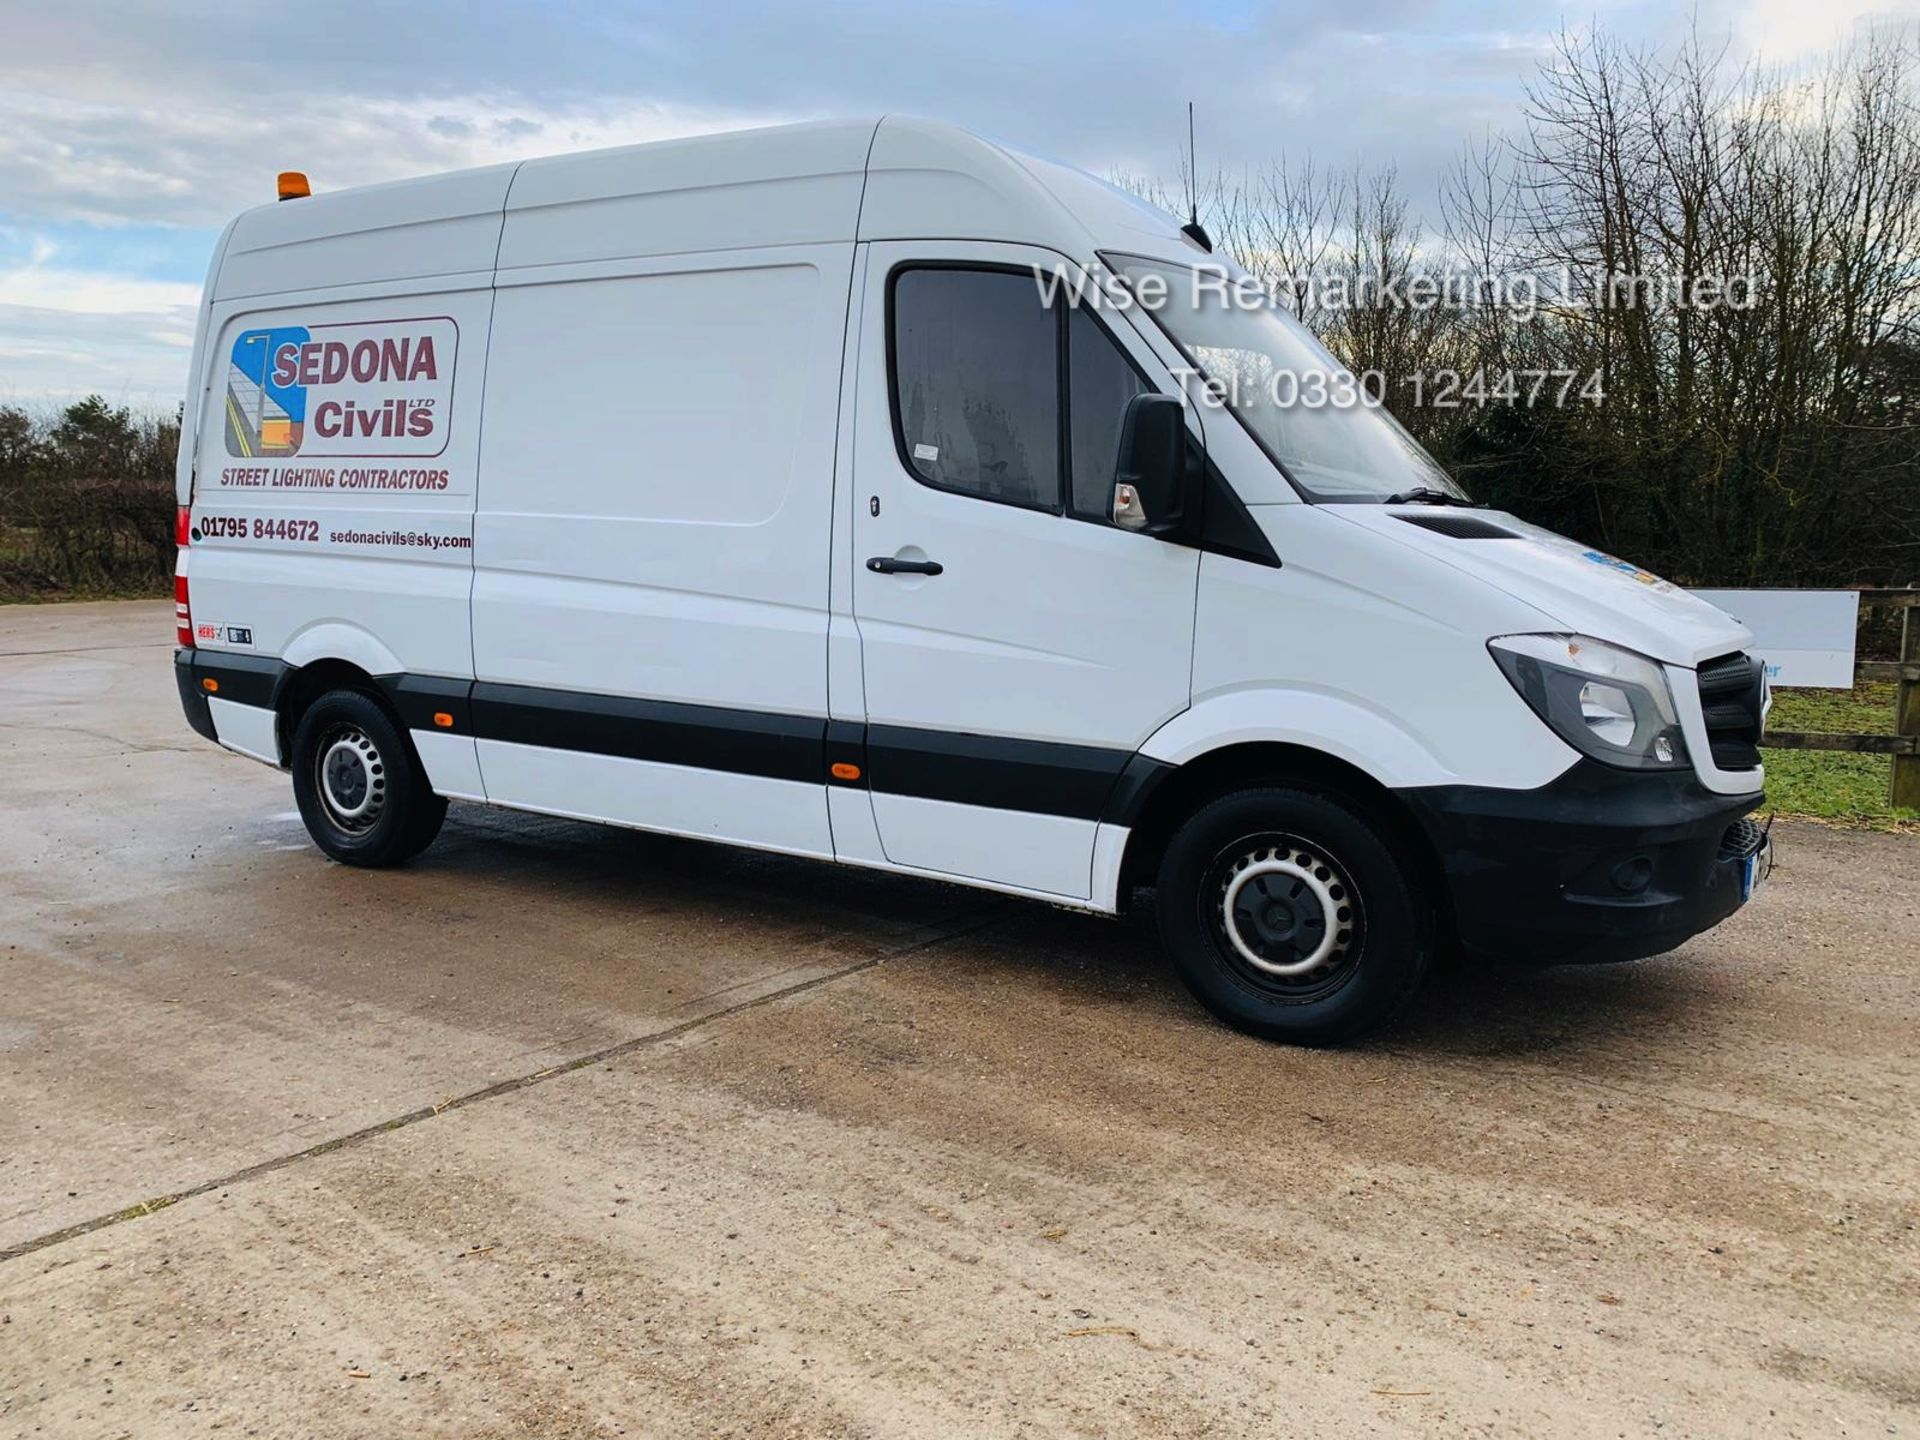 Lot 16 - Mercedes Sprinter 313 2.1 CDI - 2014 14 Reg - 6 Speed - Ply Lined - Company Owned